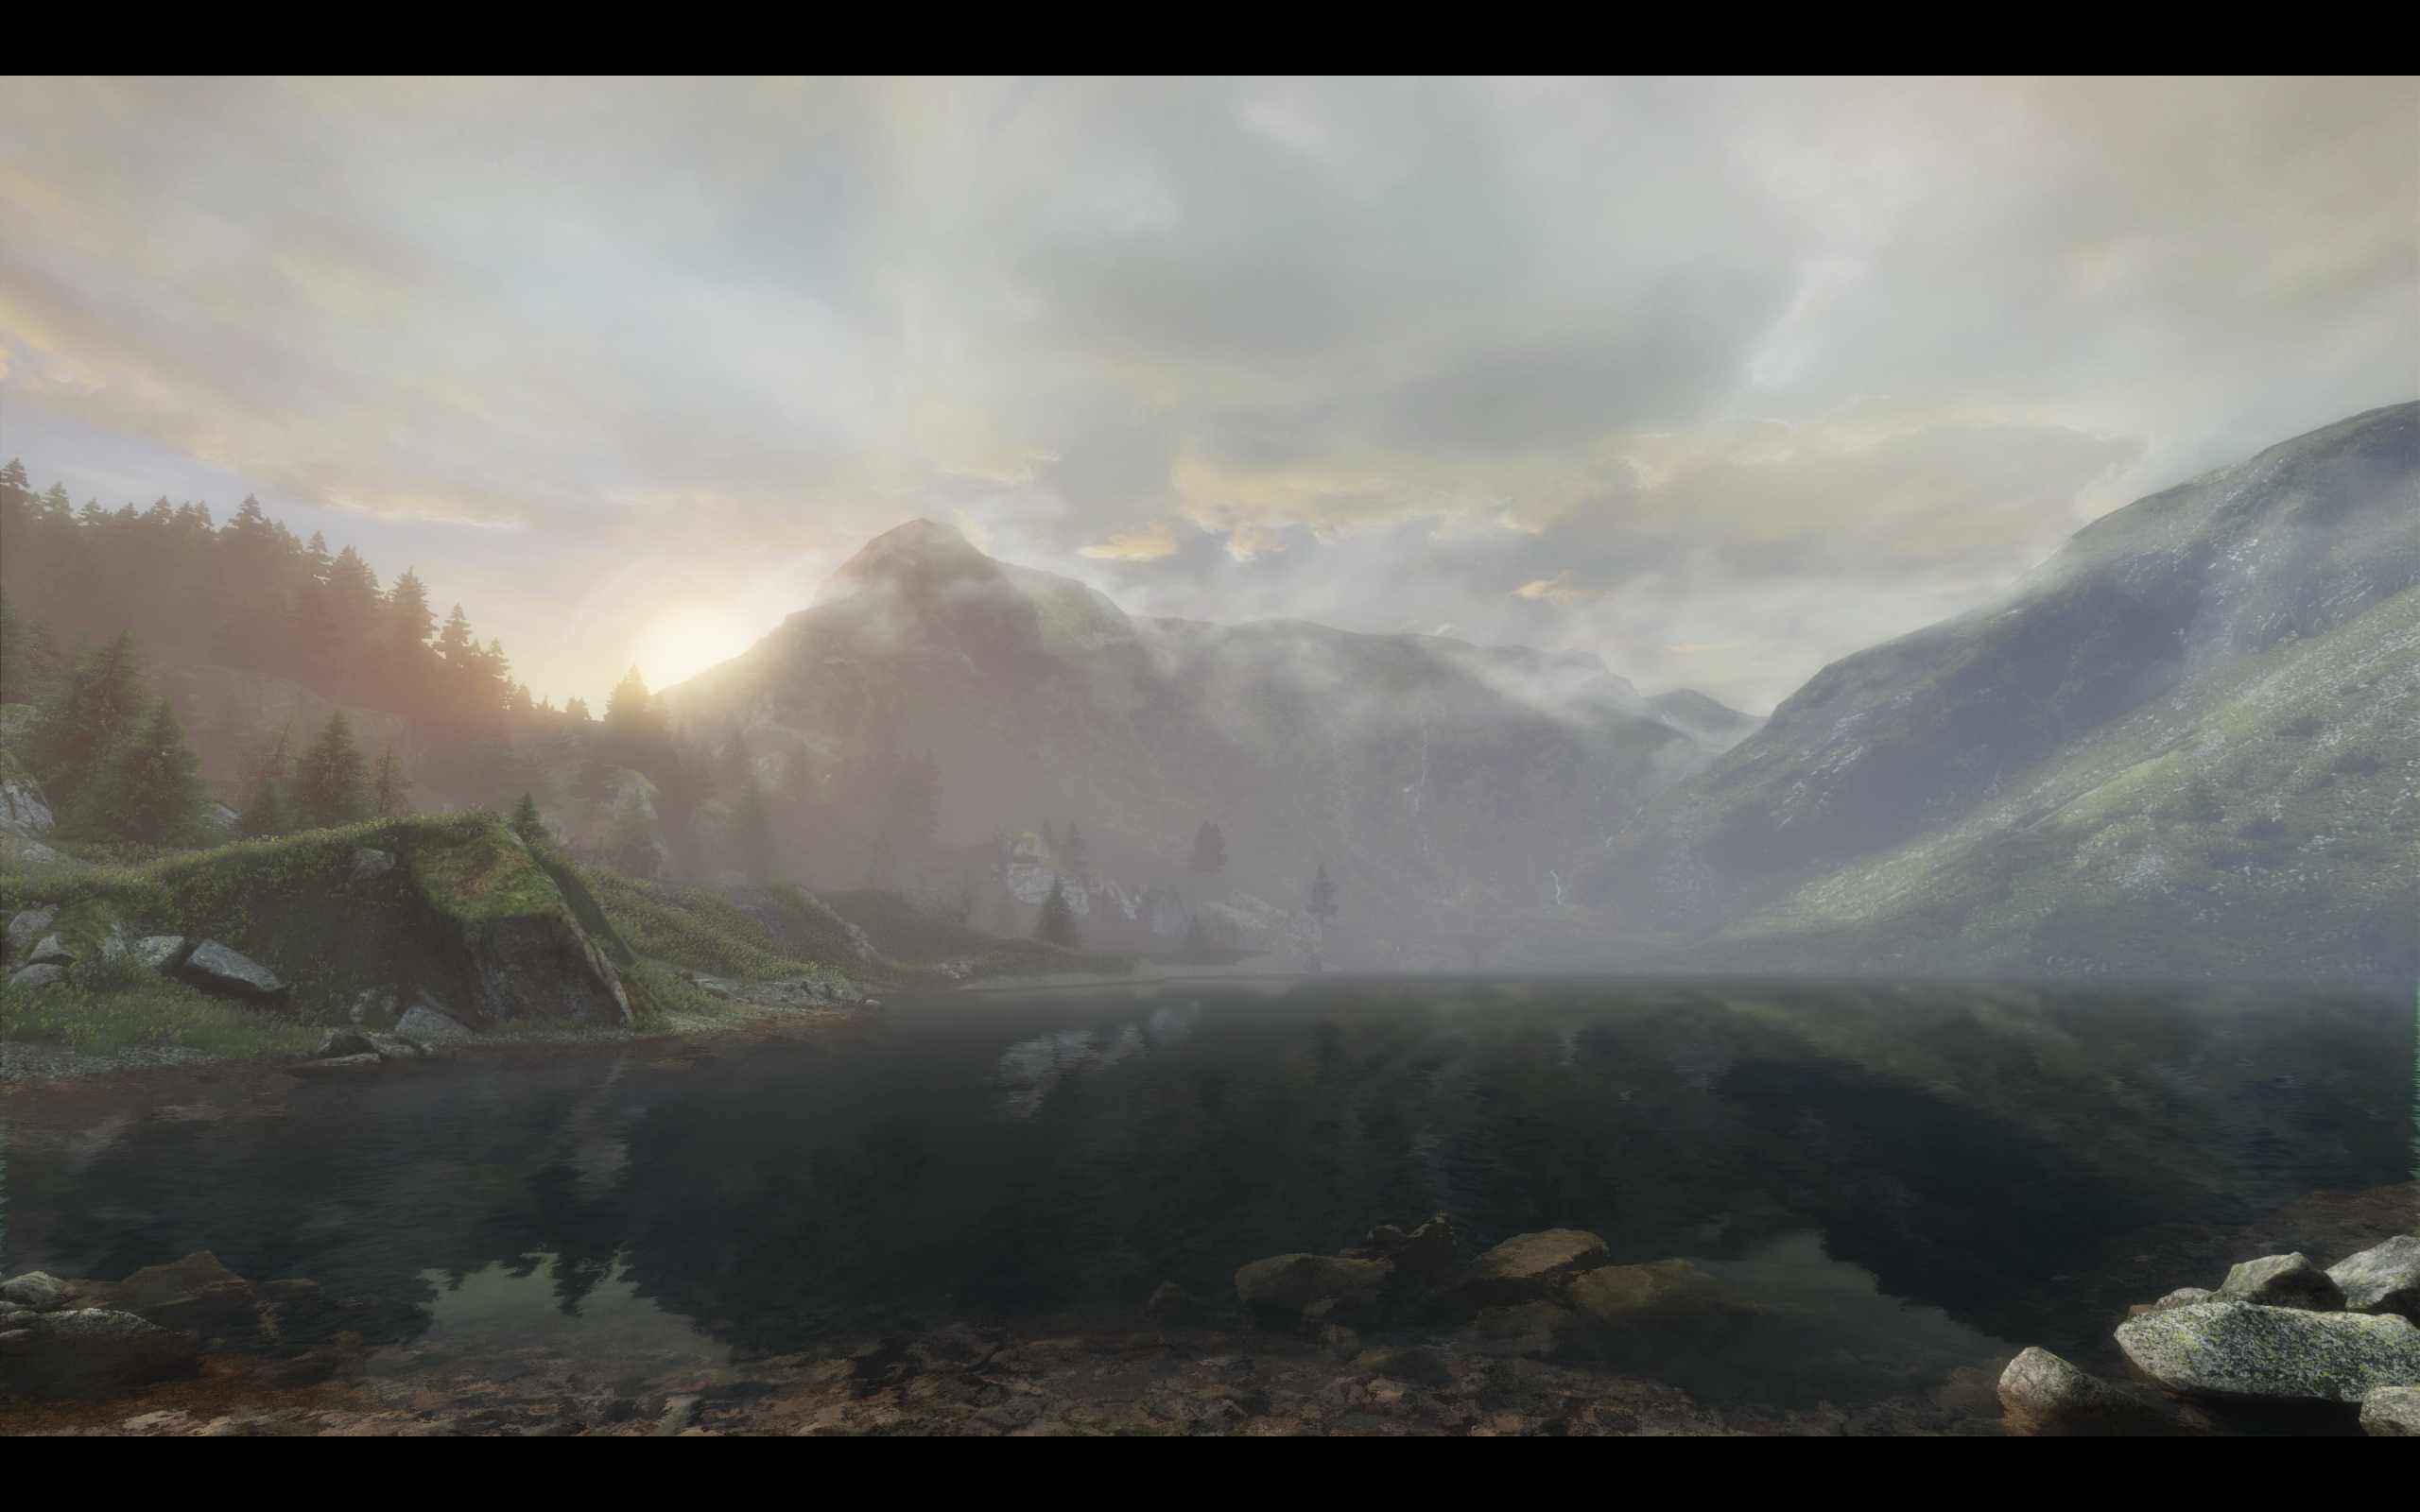 Beginning of Final Scene in The Vanishing of Ethan Carter